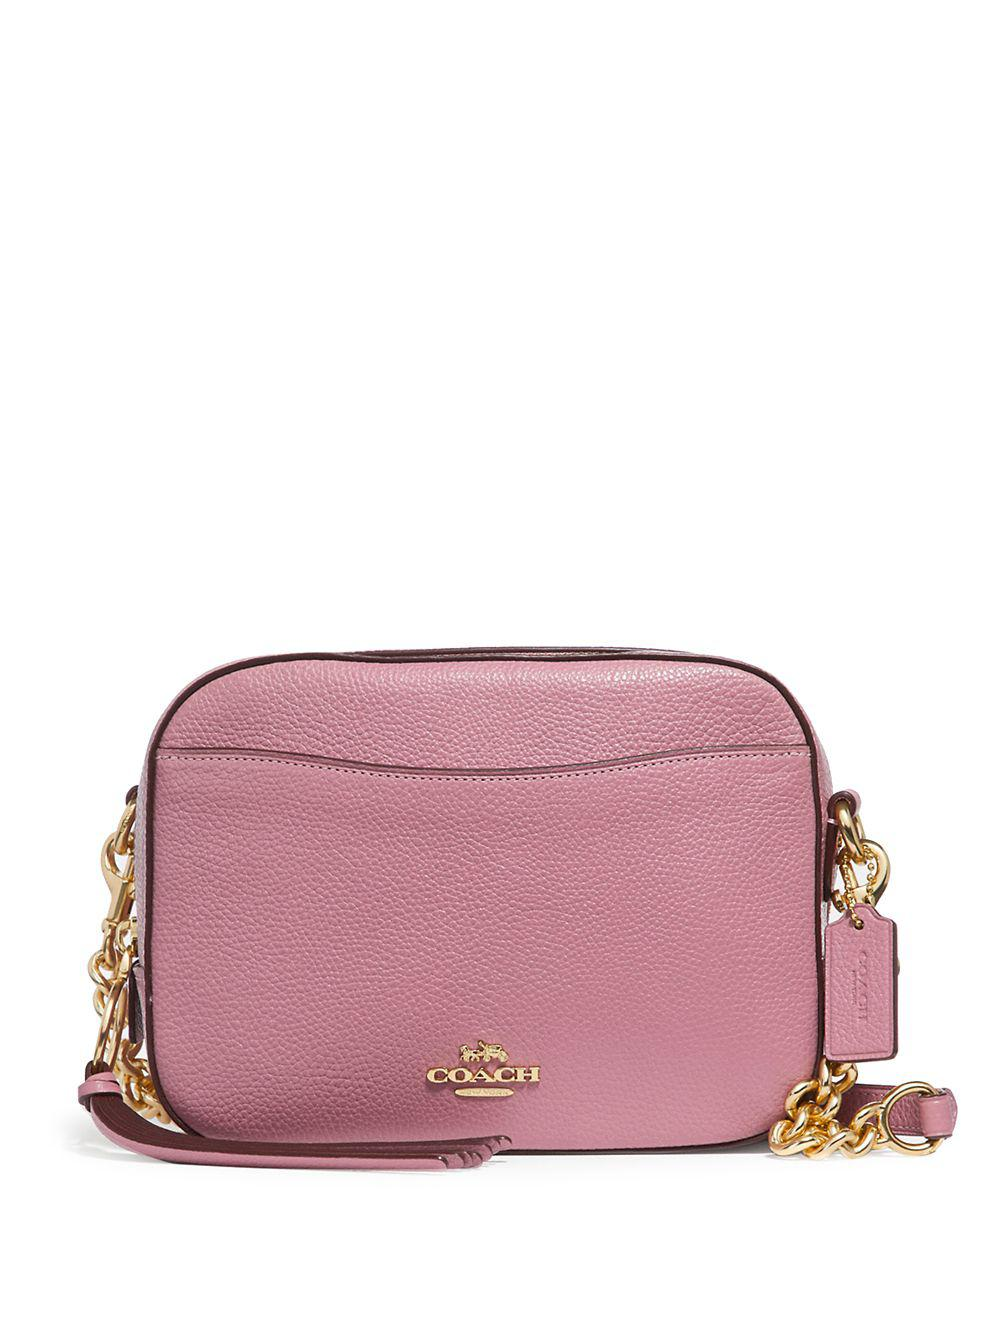 f66e362fa88d COACH - Pink Leather Camera Crossbody Bag - Lyst. View fullscreen